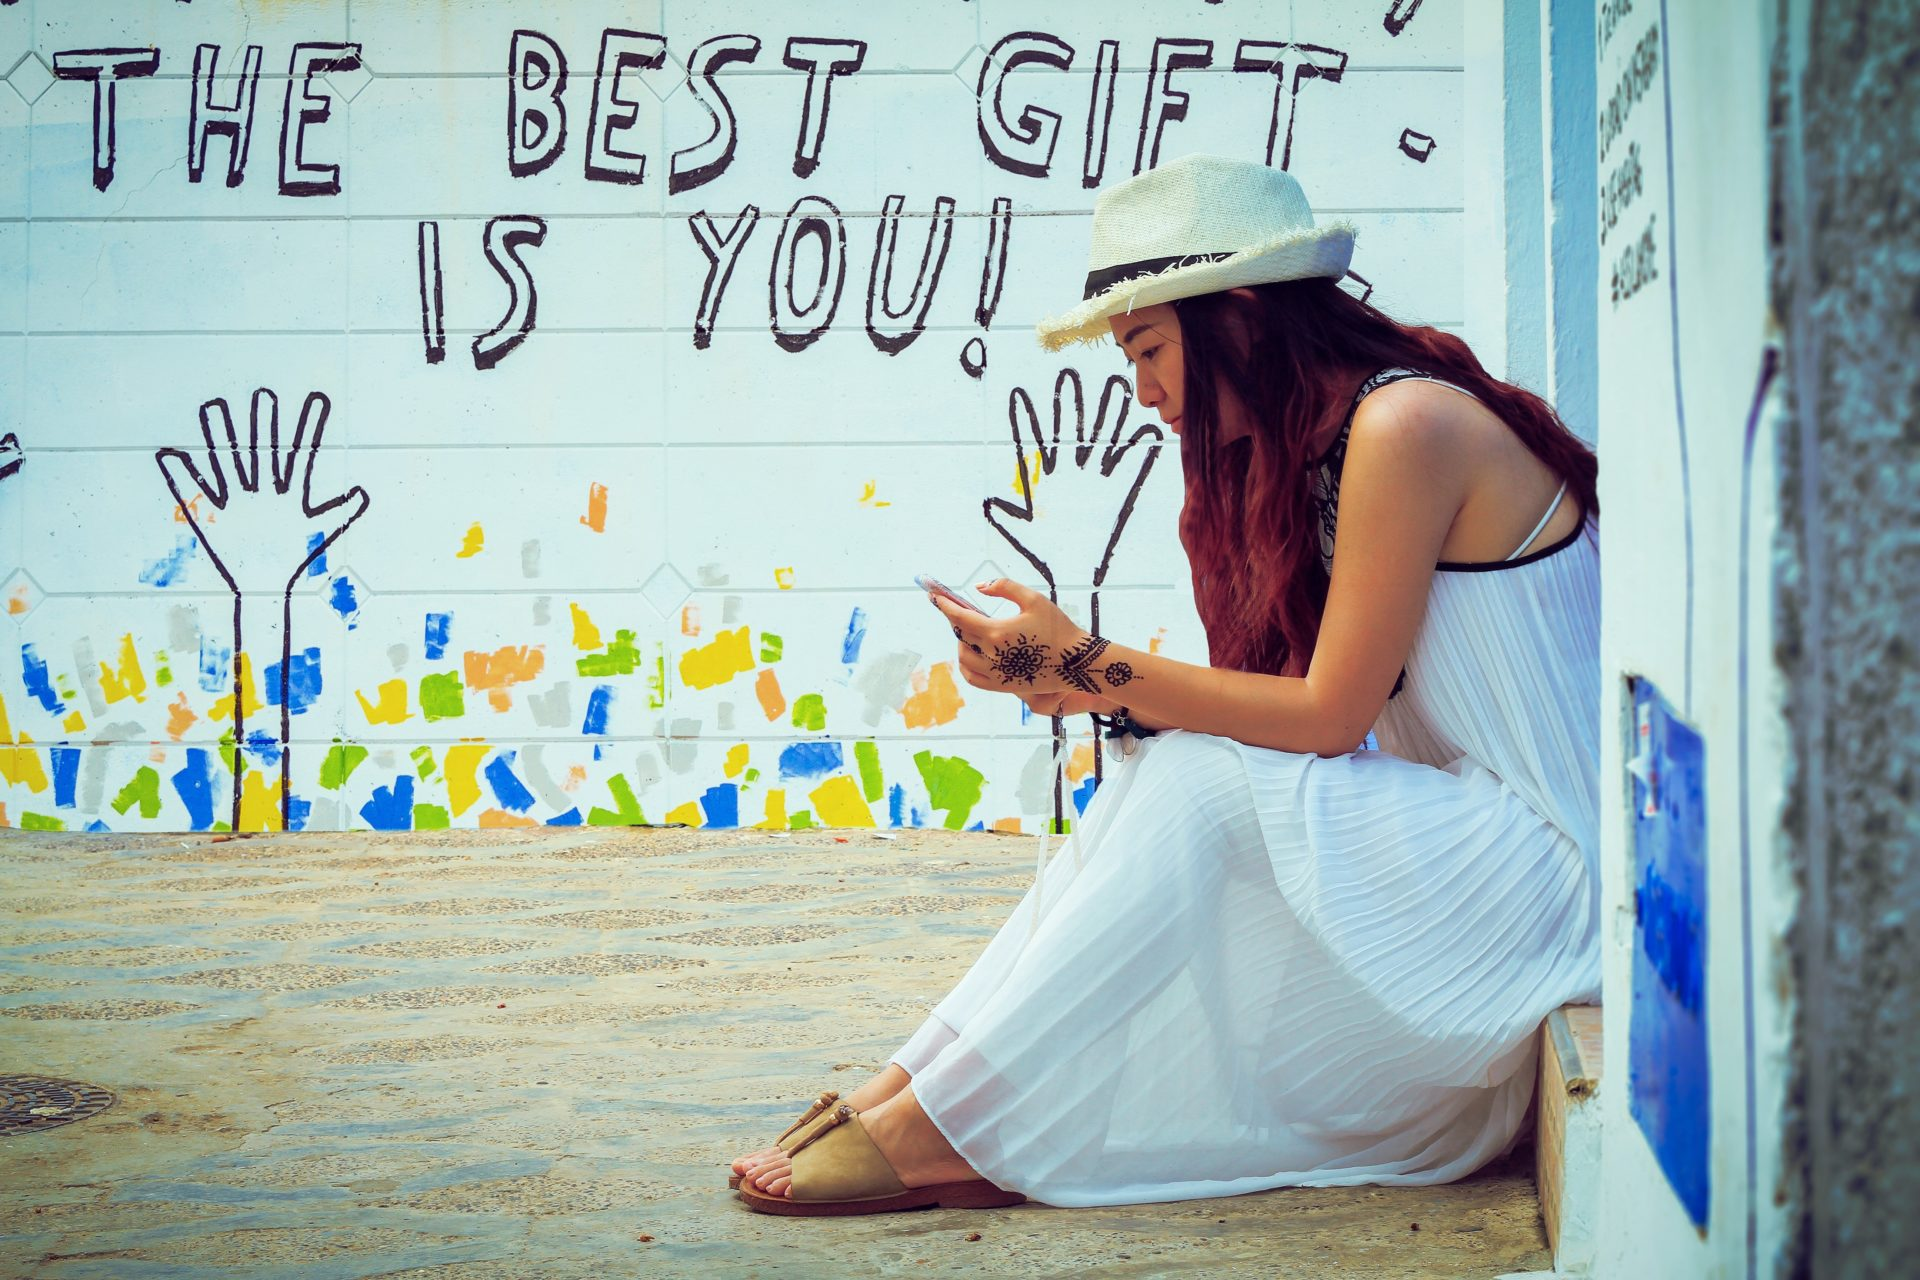 Girl in a long white dress with a white woven fedora sitting on some steps looking at her phone with a mural in the background that says